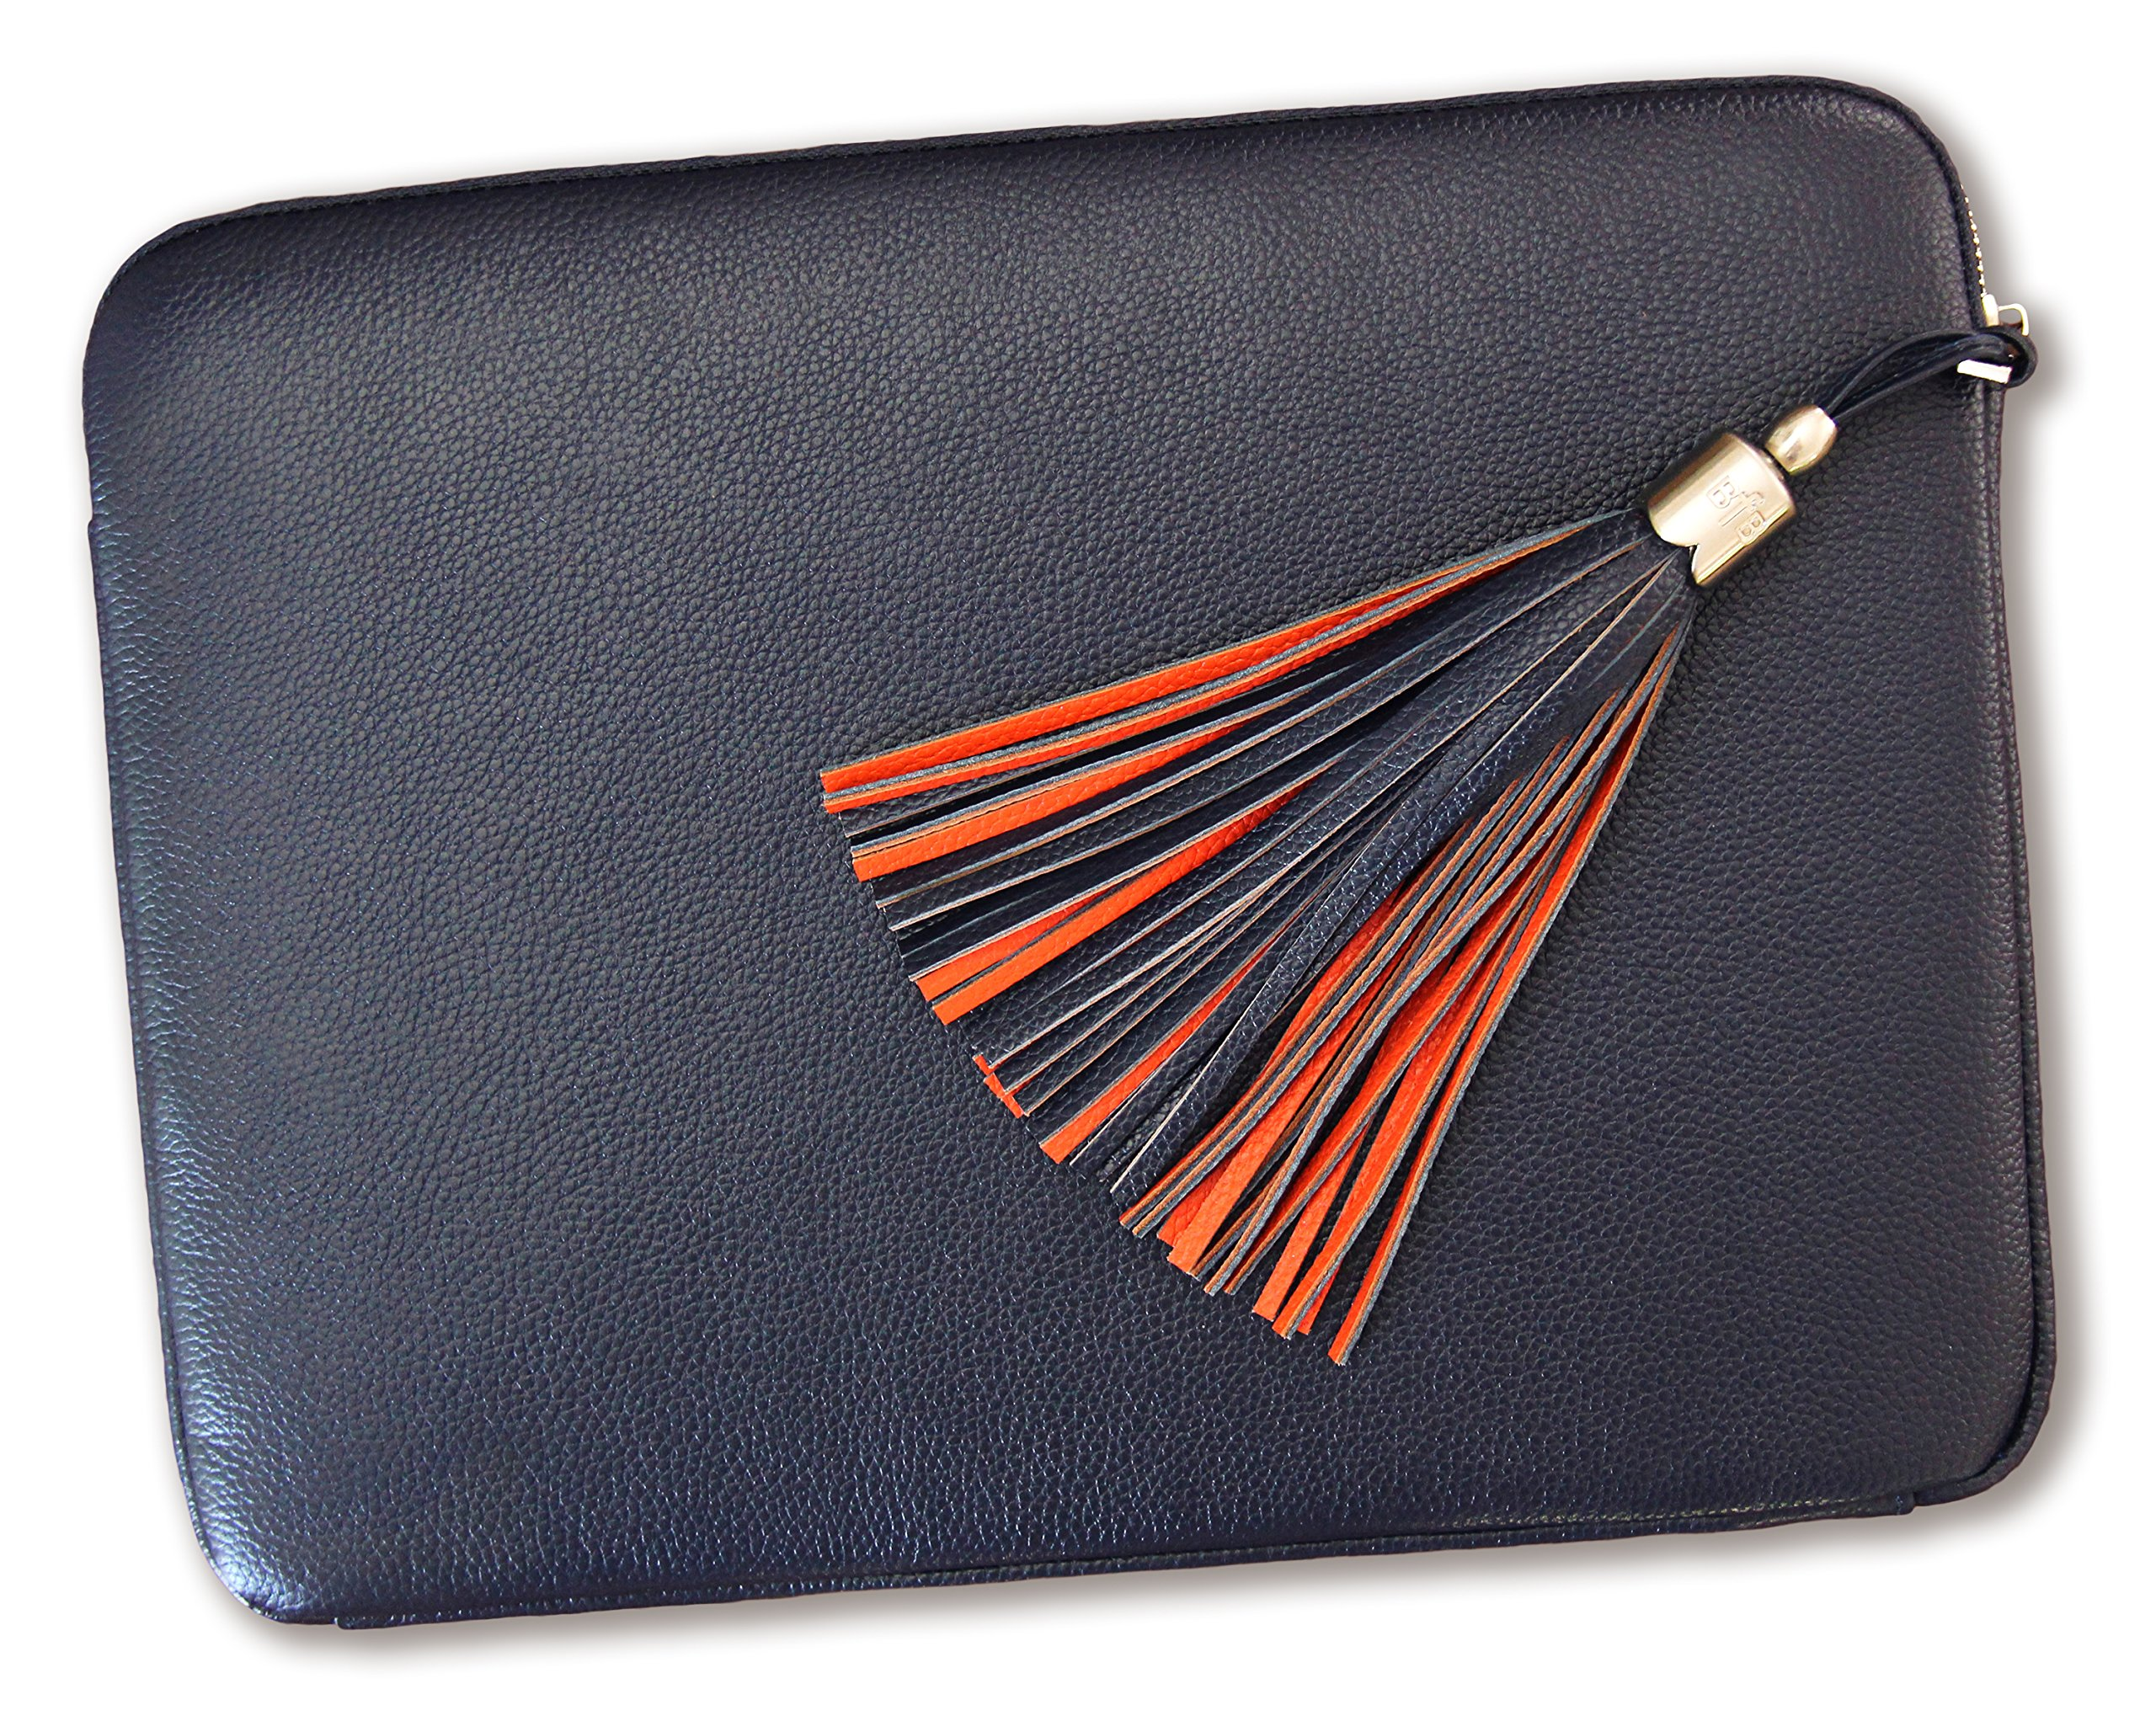 BFB Laptop Sleeve Case Cover – Genuine Leather Compatible 13 inch MacBook Pro or Air – Handmade Beautiful and Practical – Designer Quality That Lasts – Navy